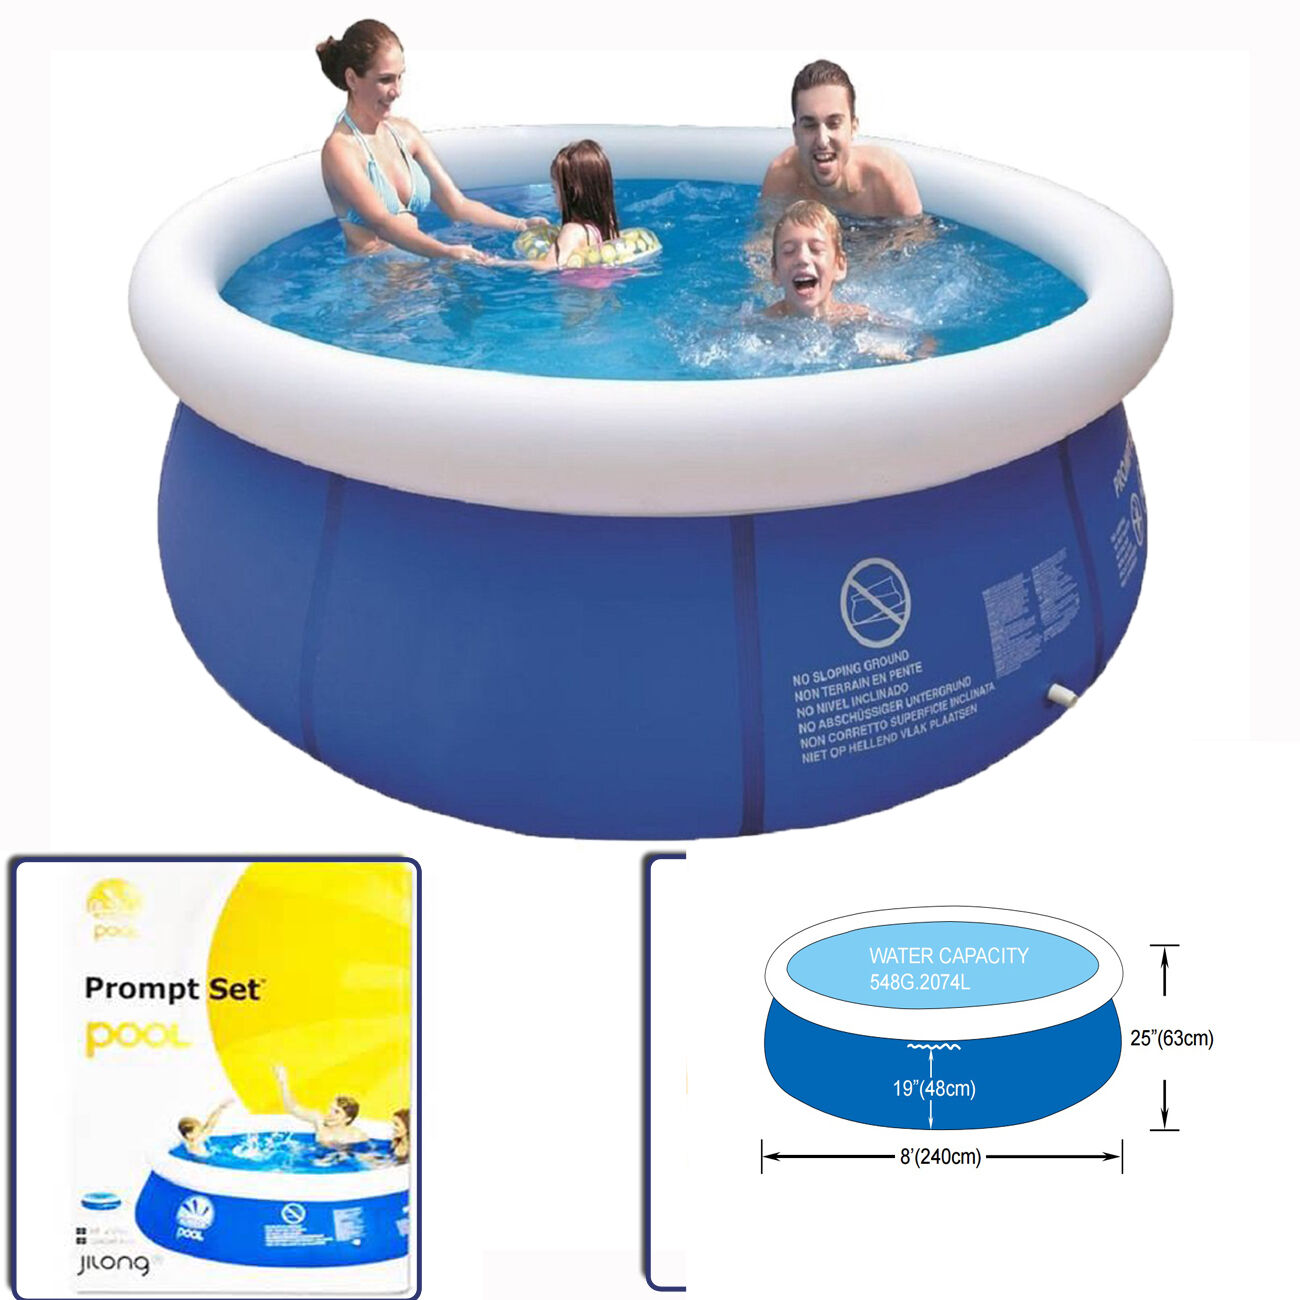 8ft Prompt Round Swimming Kid Family Pool Inflatable Paddling Outdoor Garden Set Ebay